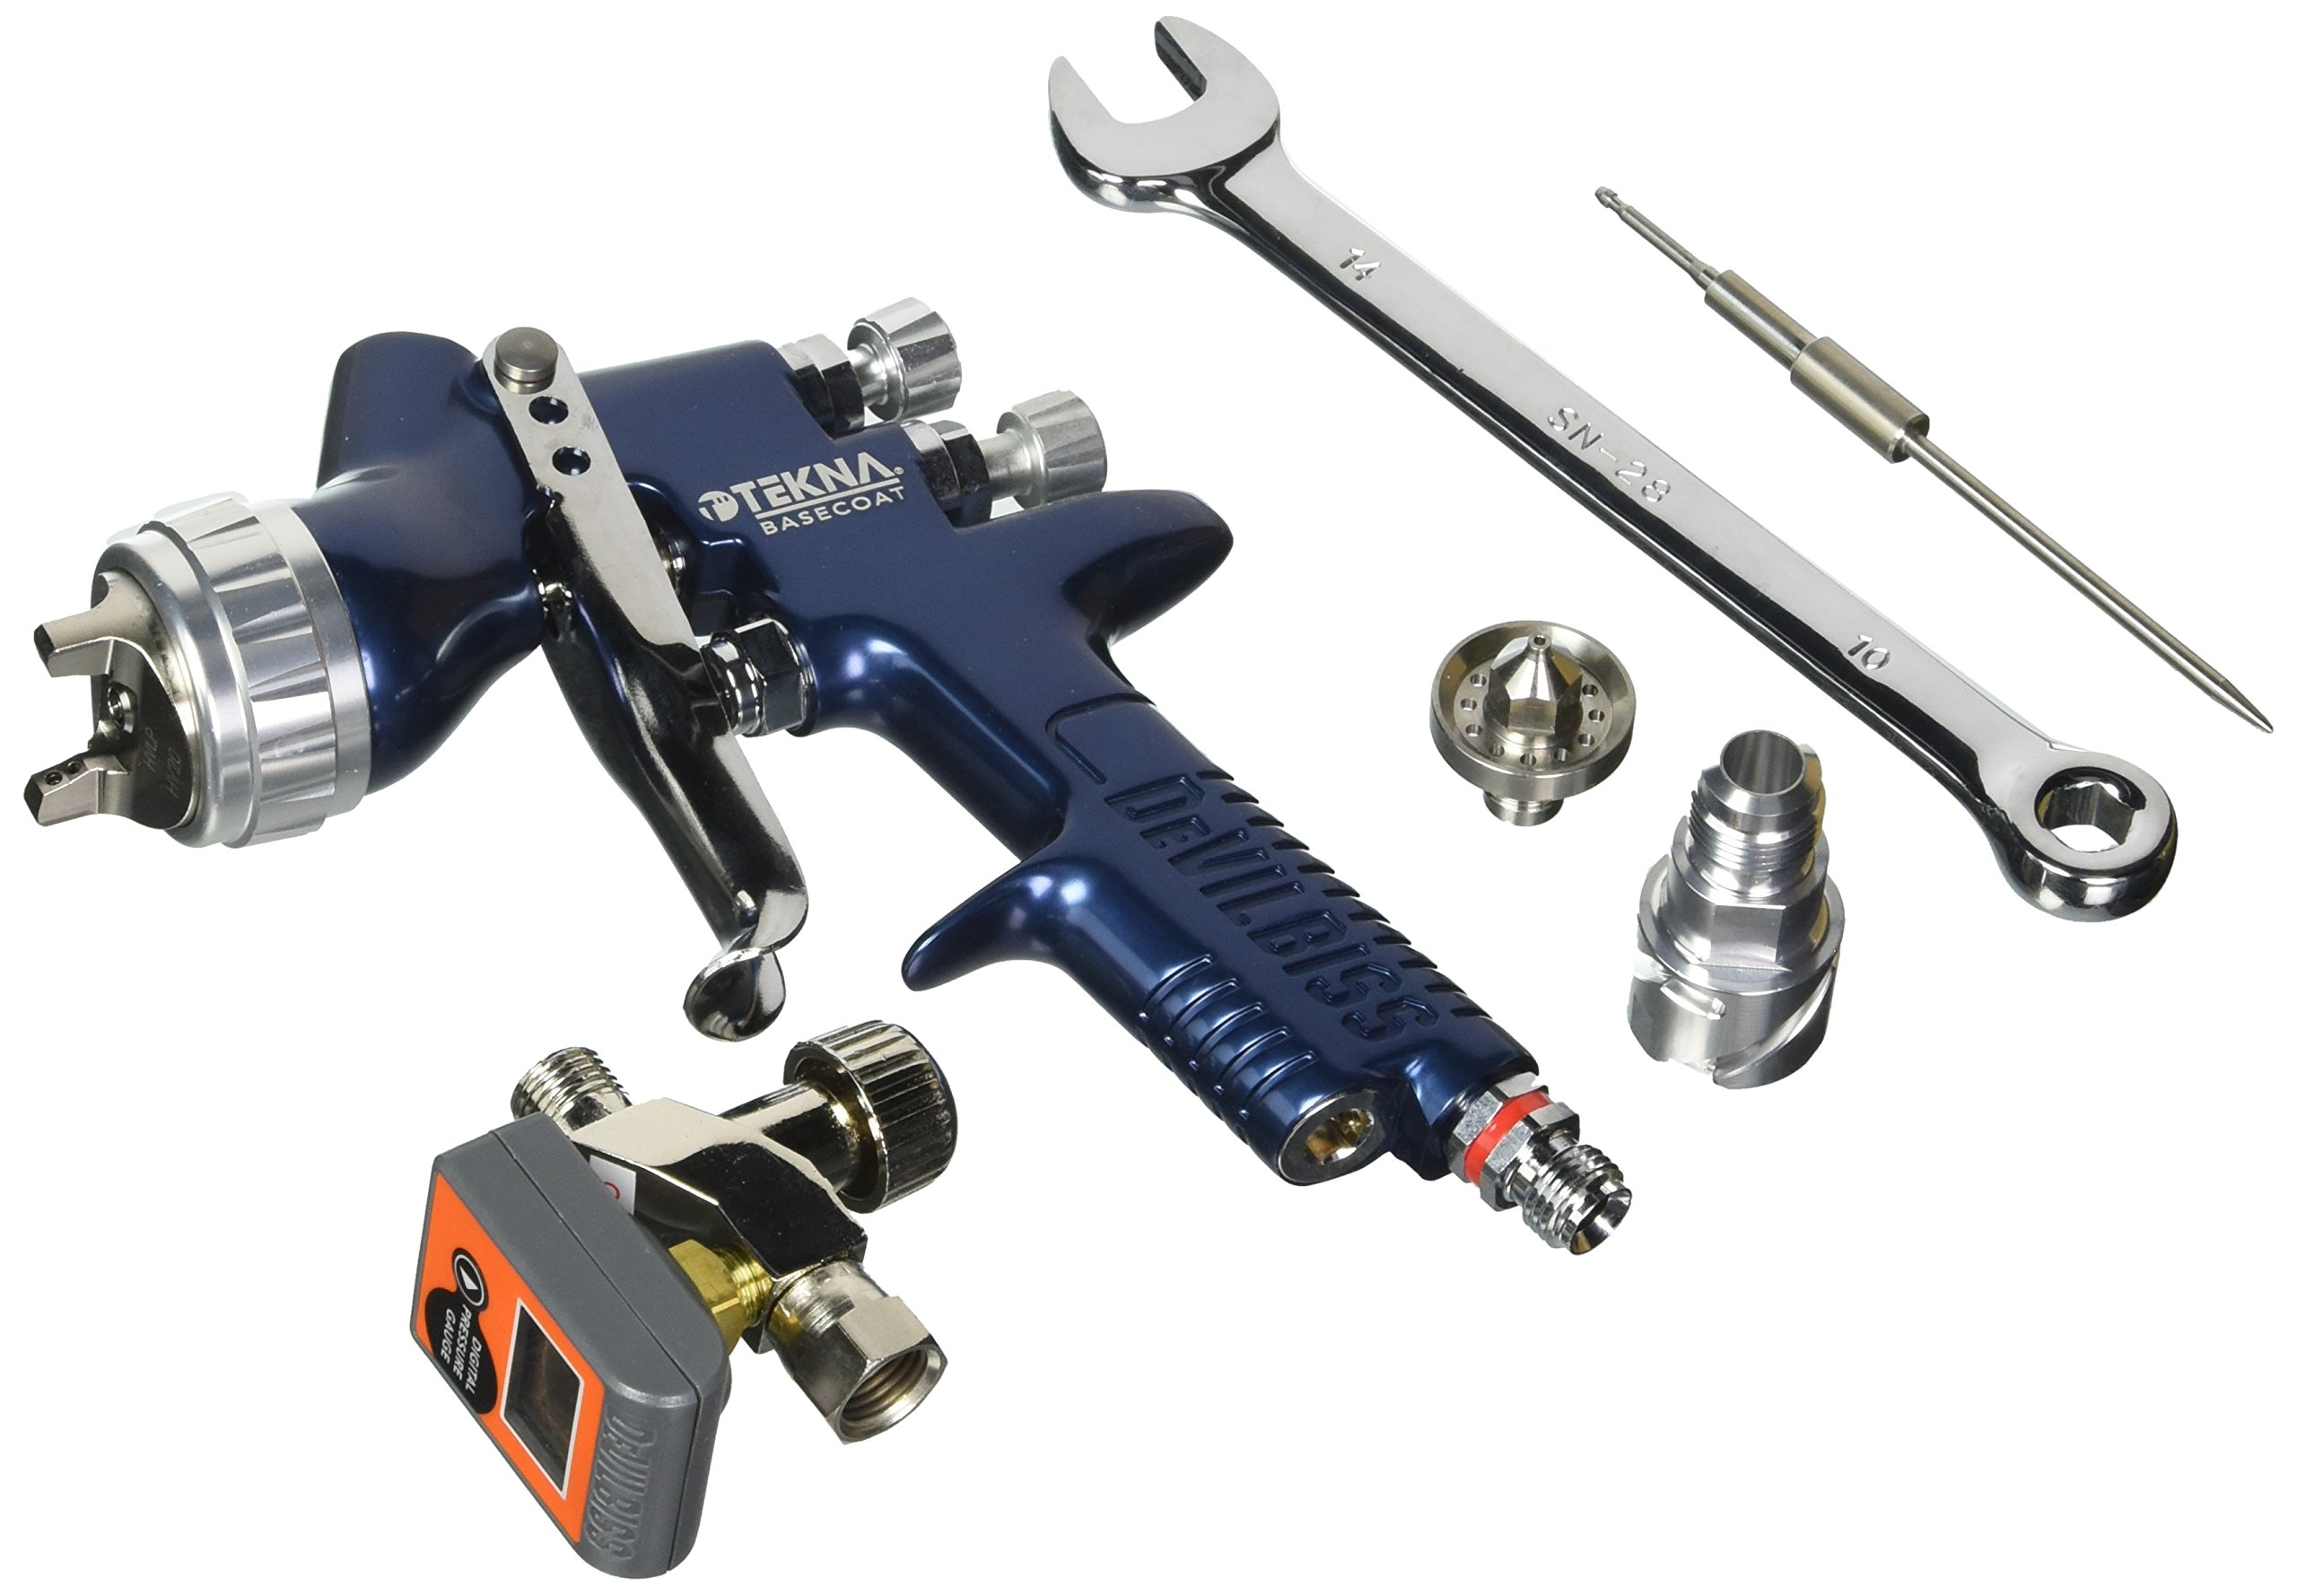 DeVilbiss 703893 Spray Gun (1.3 and 1.4 Needle/Nozzle and No Cup) by DeVilbiss